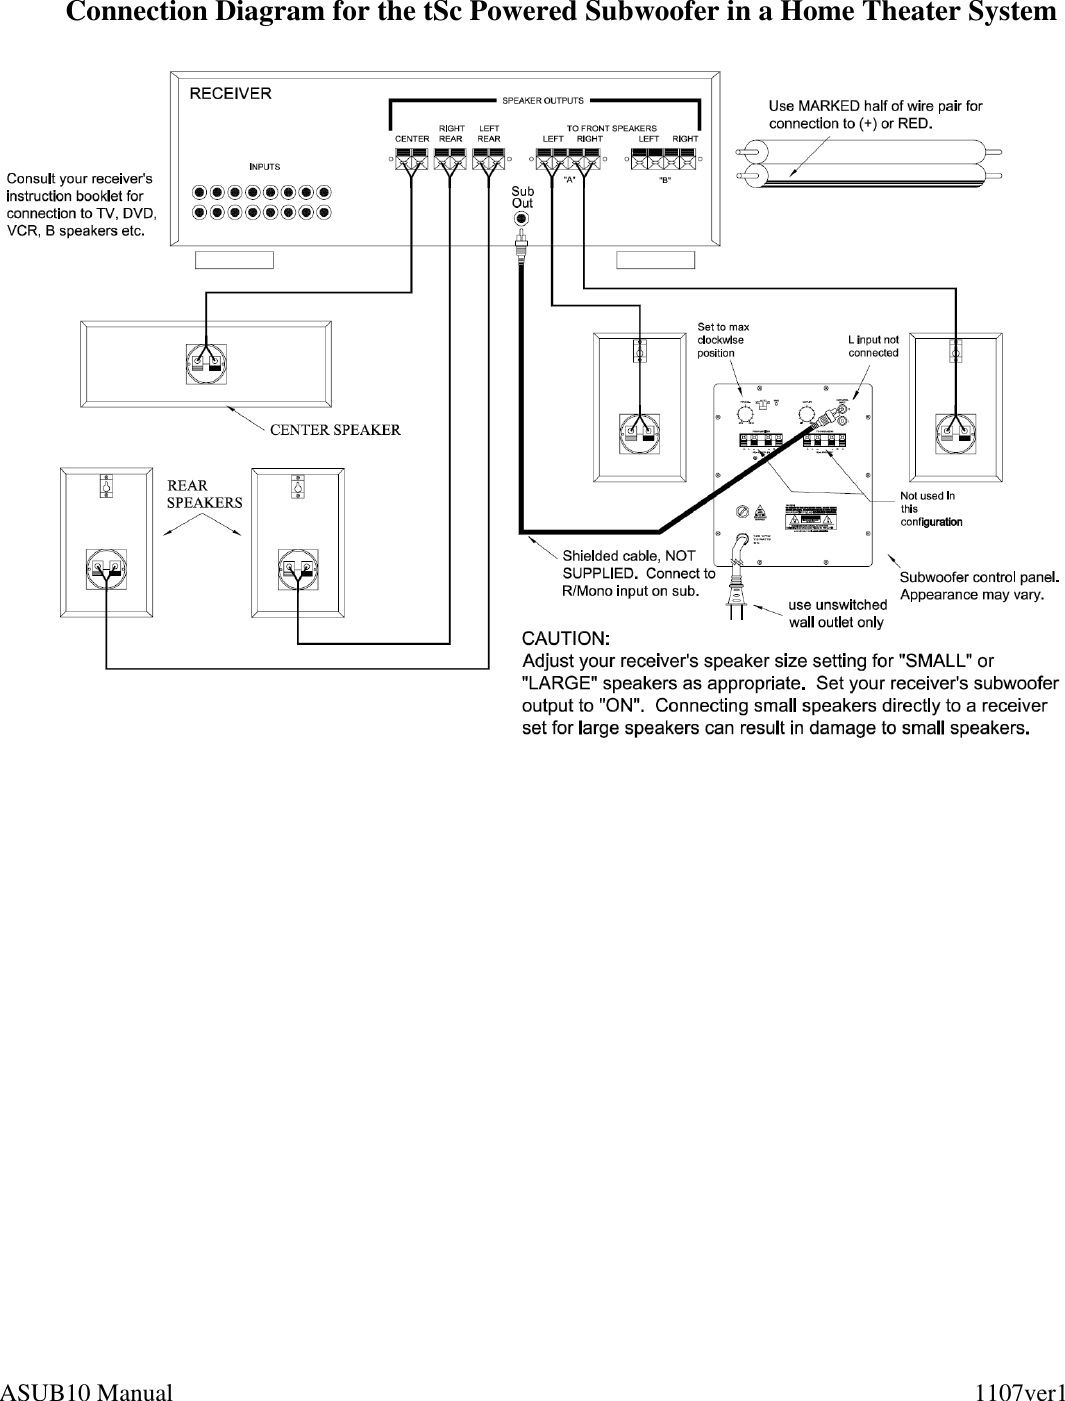 the speaker company asub10 users manual connection diagram for tsc best subwoofer page 4 of the speaker company the speaker company asub10